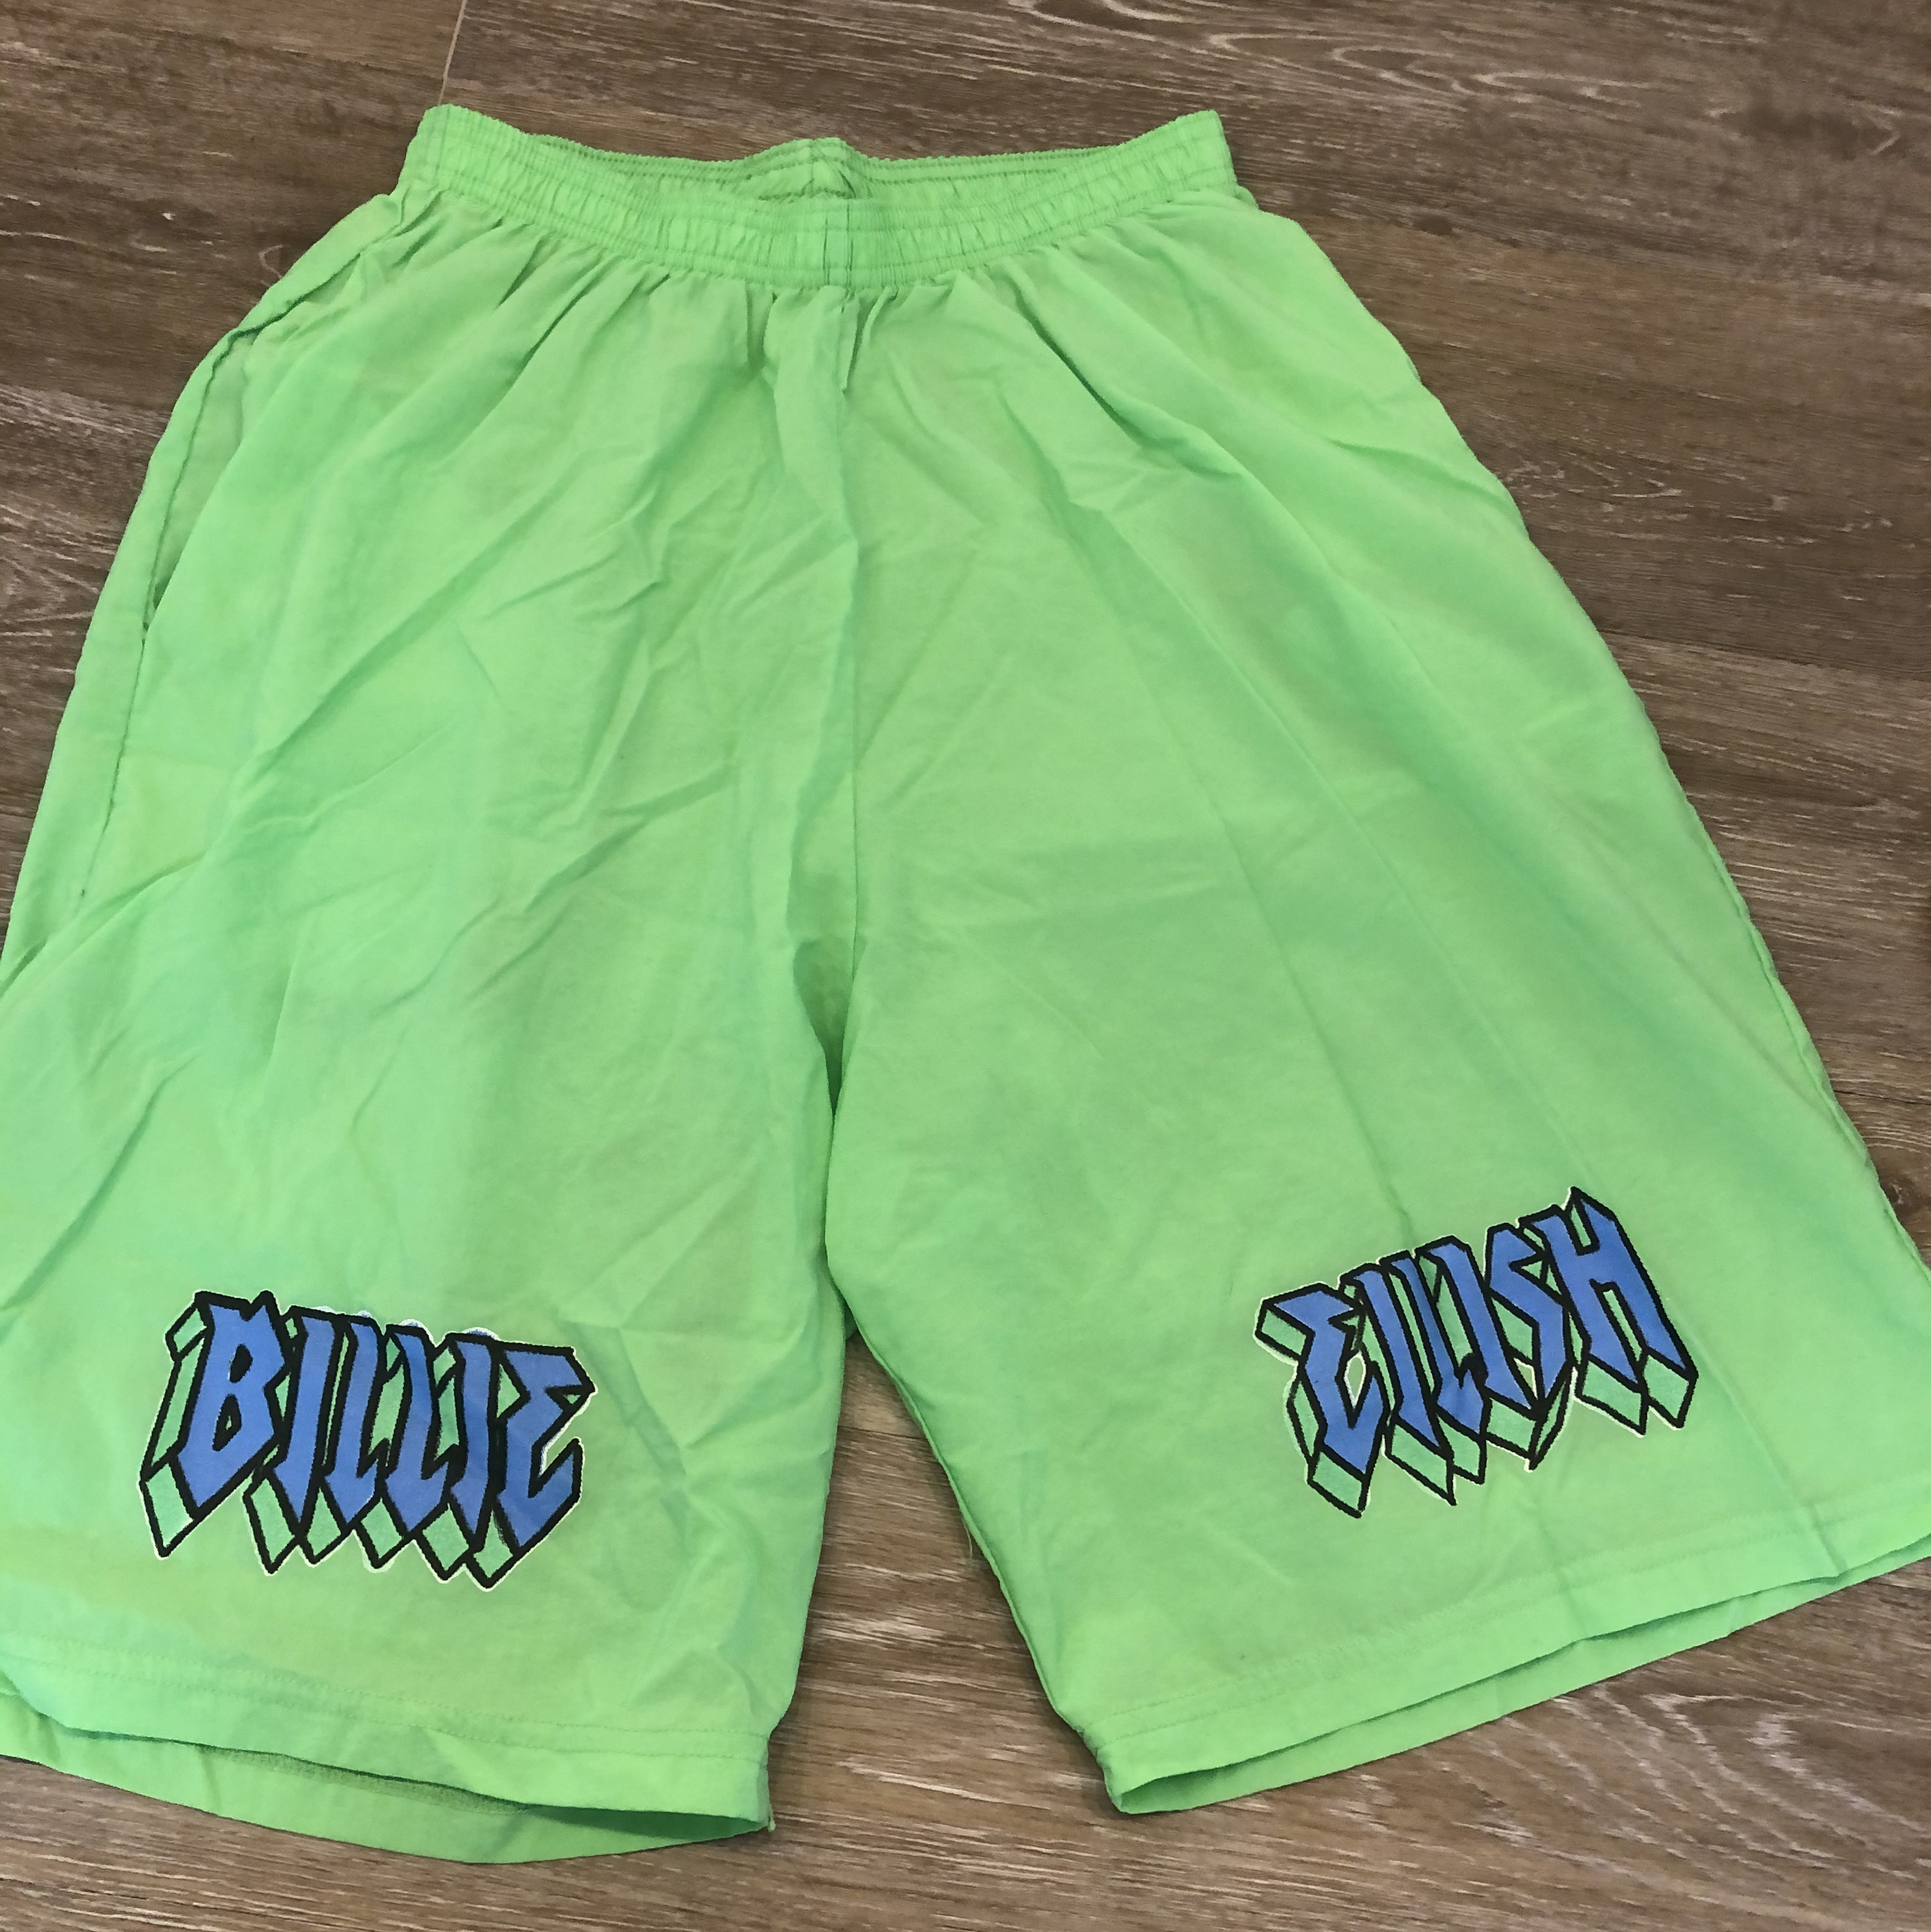 Billie Eilish Basketball Shorts Bought These At A Depop